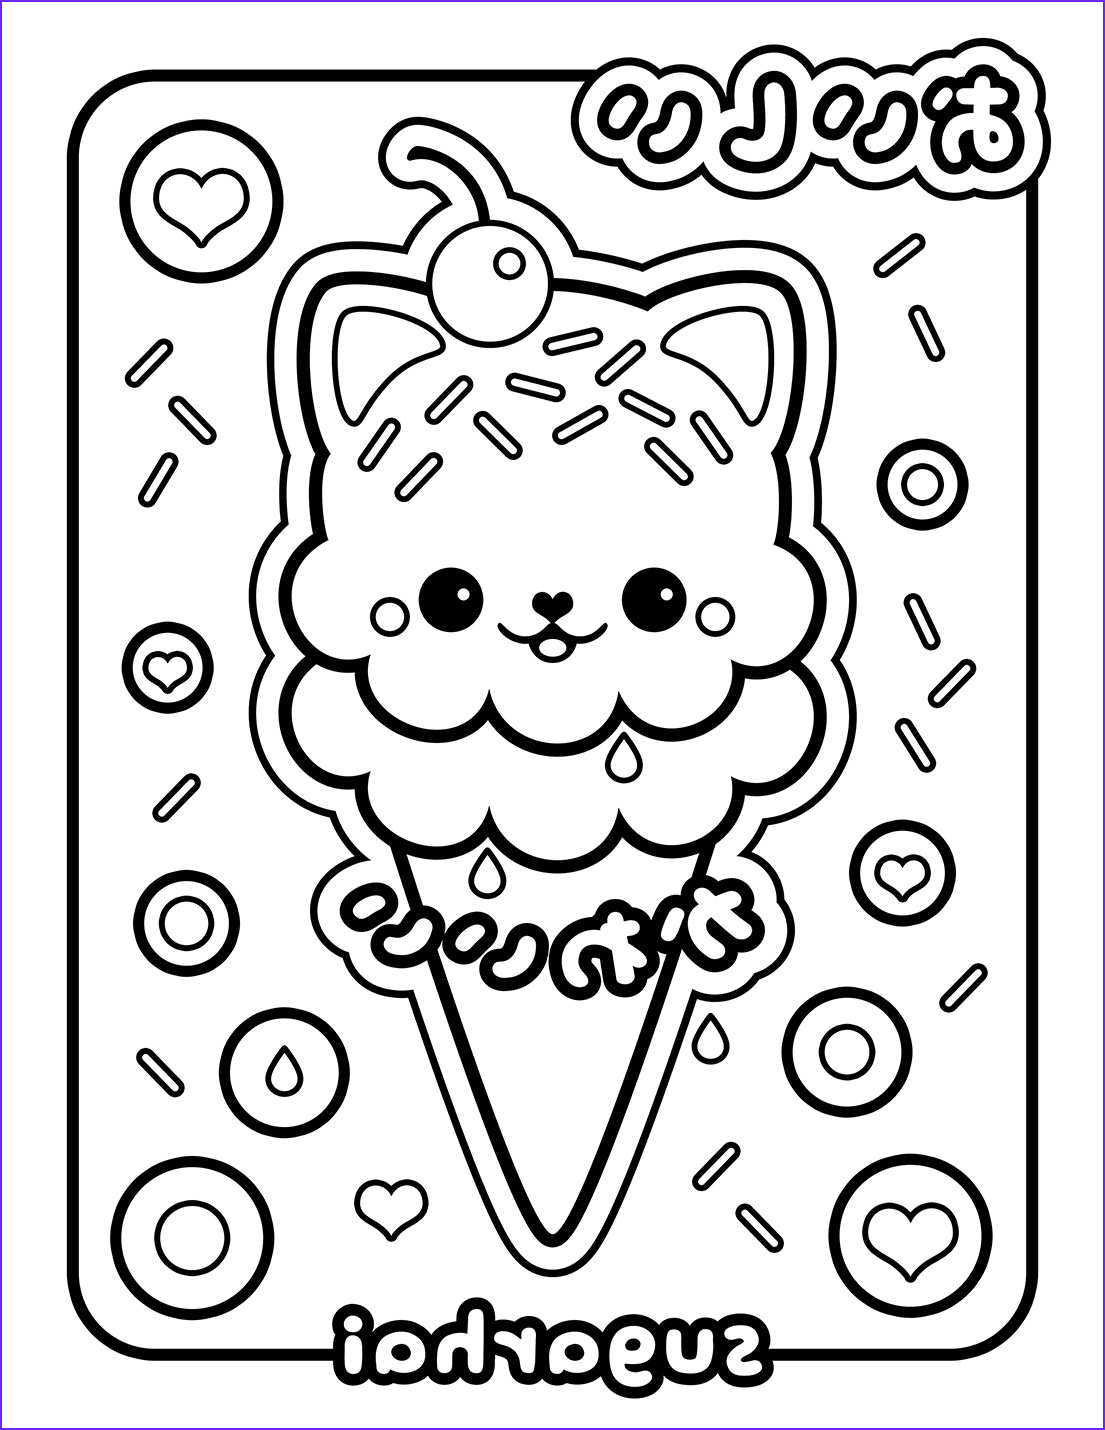 Icecream Cone Coloring Pages Elegant Gallery Free Printable Ice Cream Coloring Pages for Kids